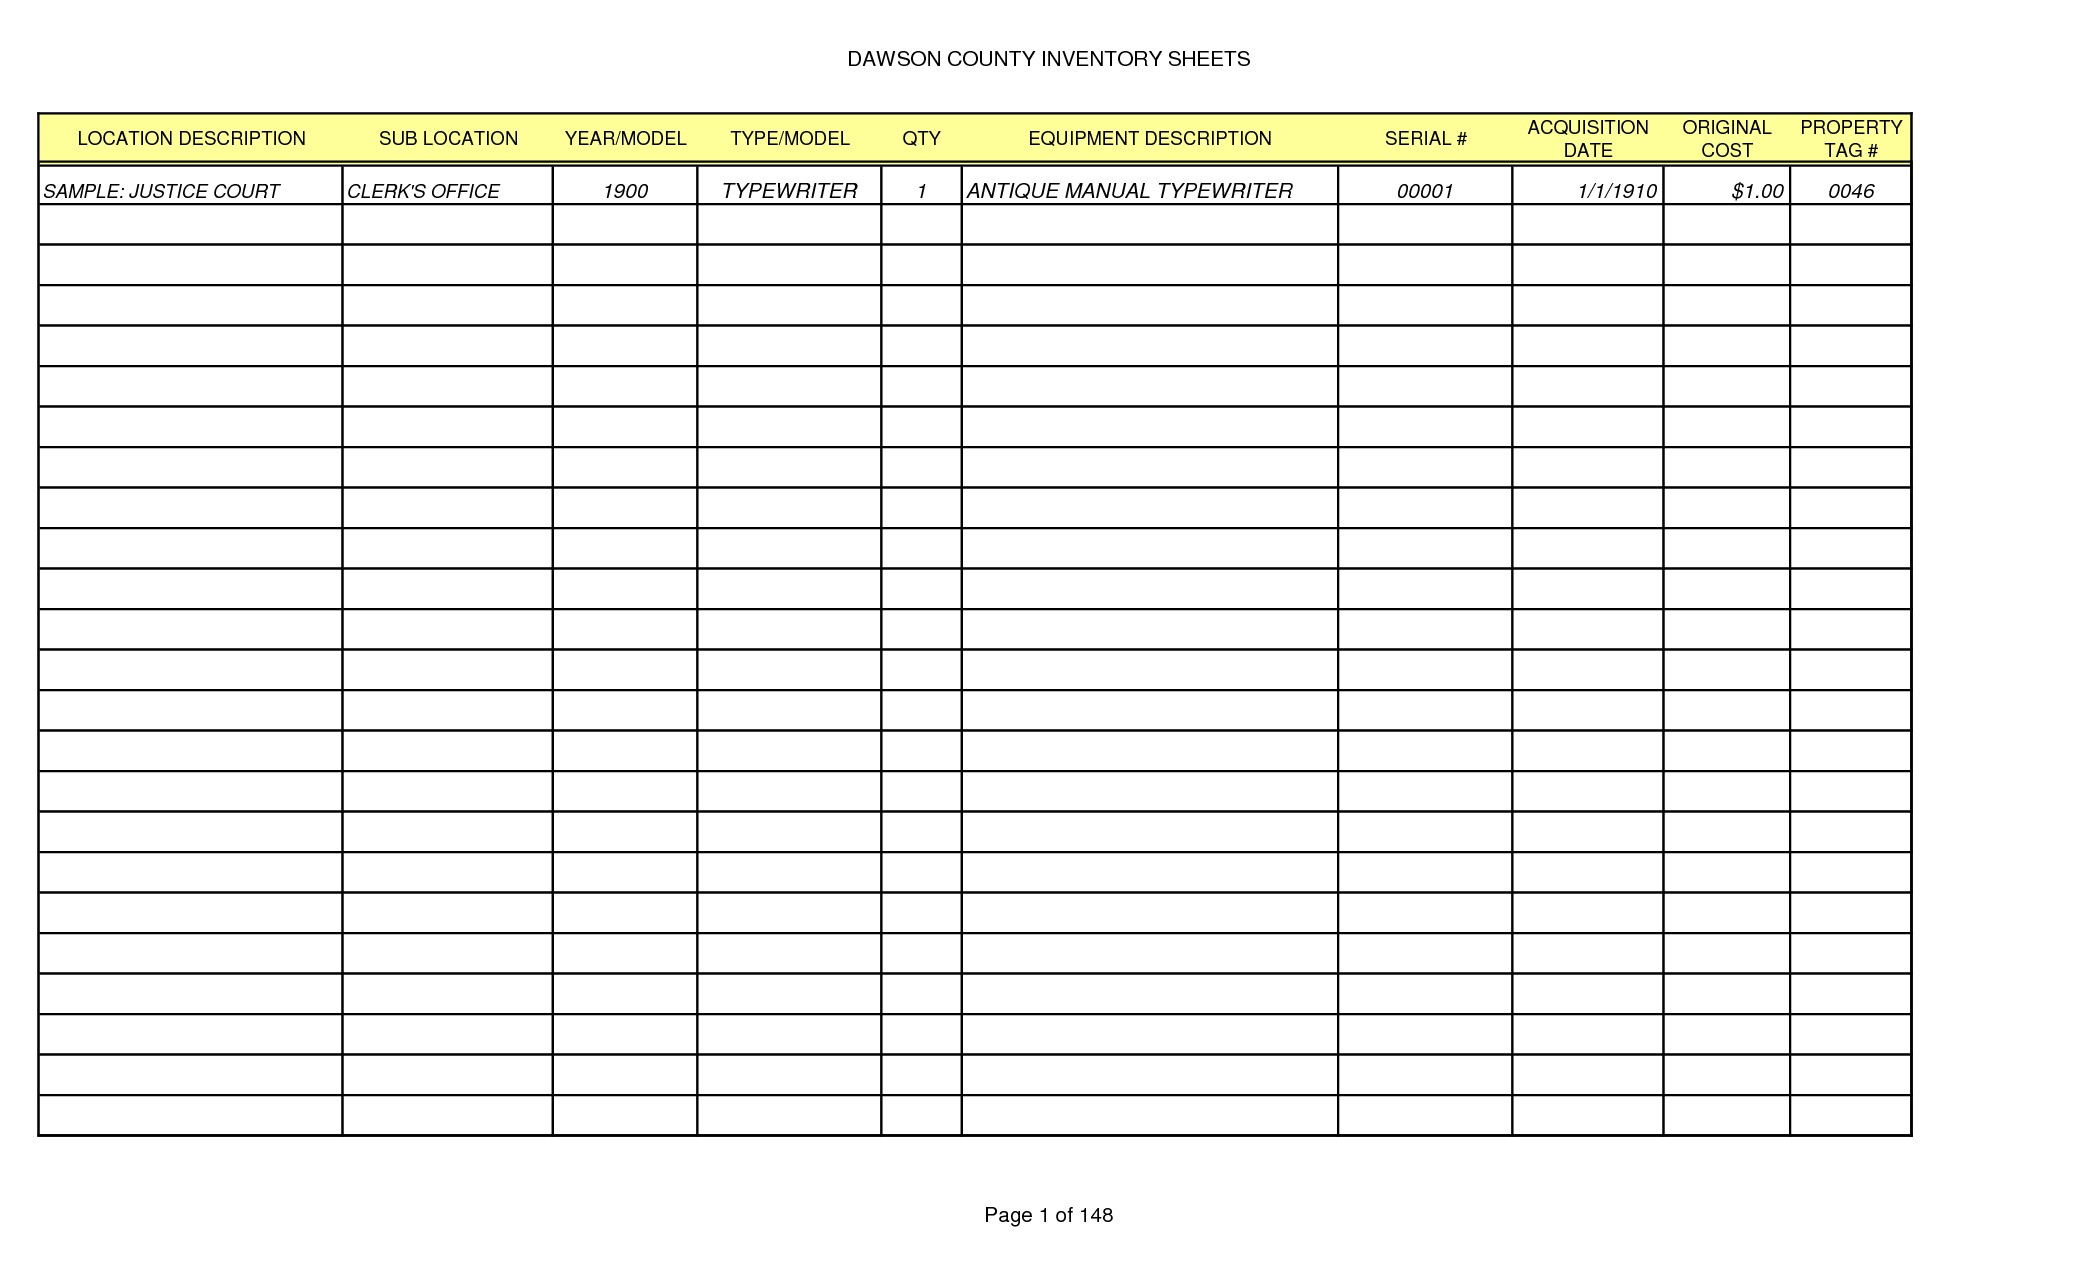 Full Size of Template Business Resignation Letter Google Sheets Templates Small Inventory Spreadsheet